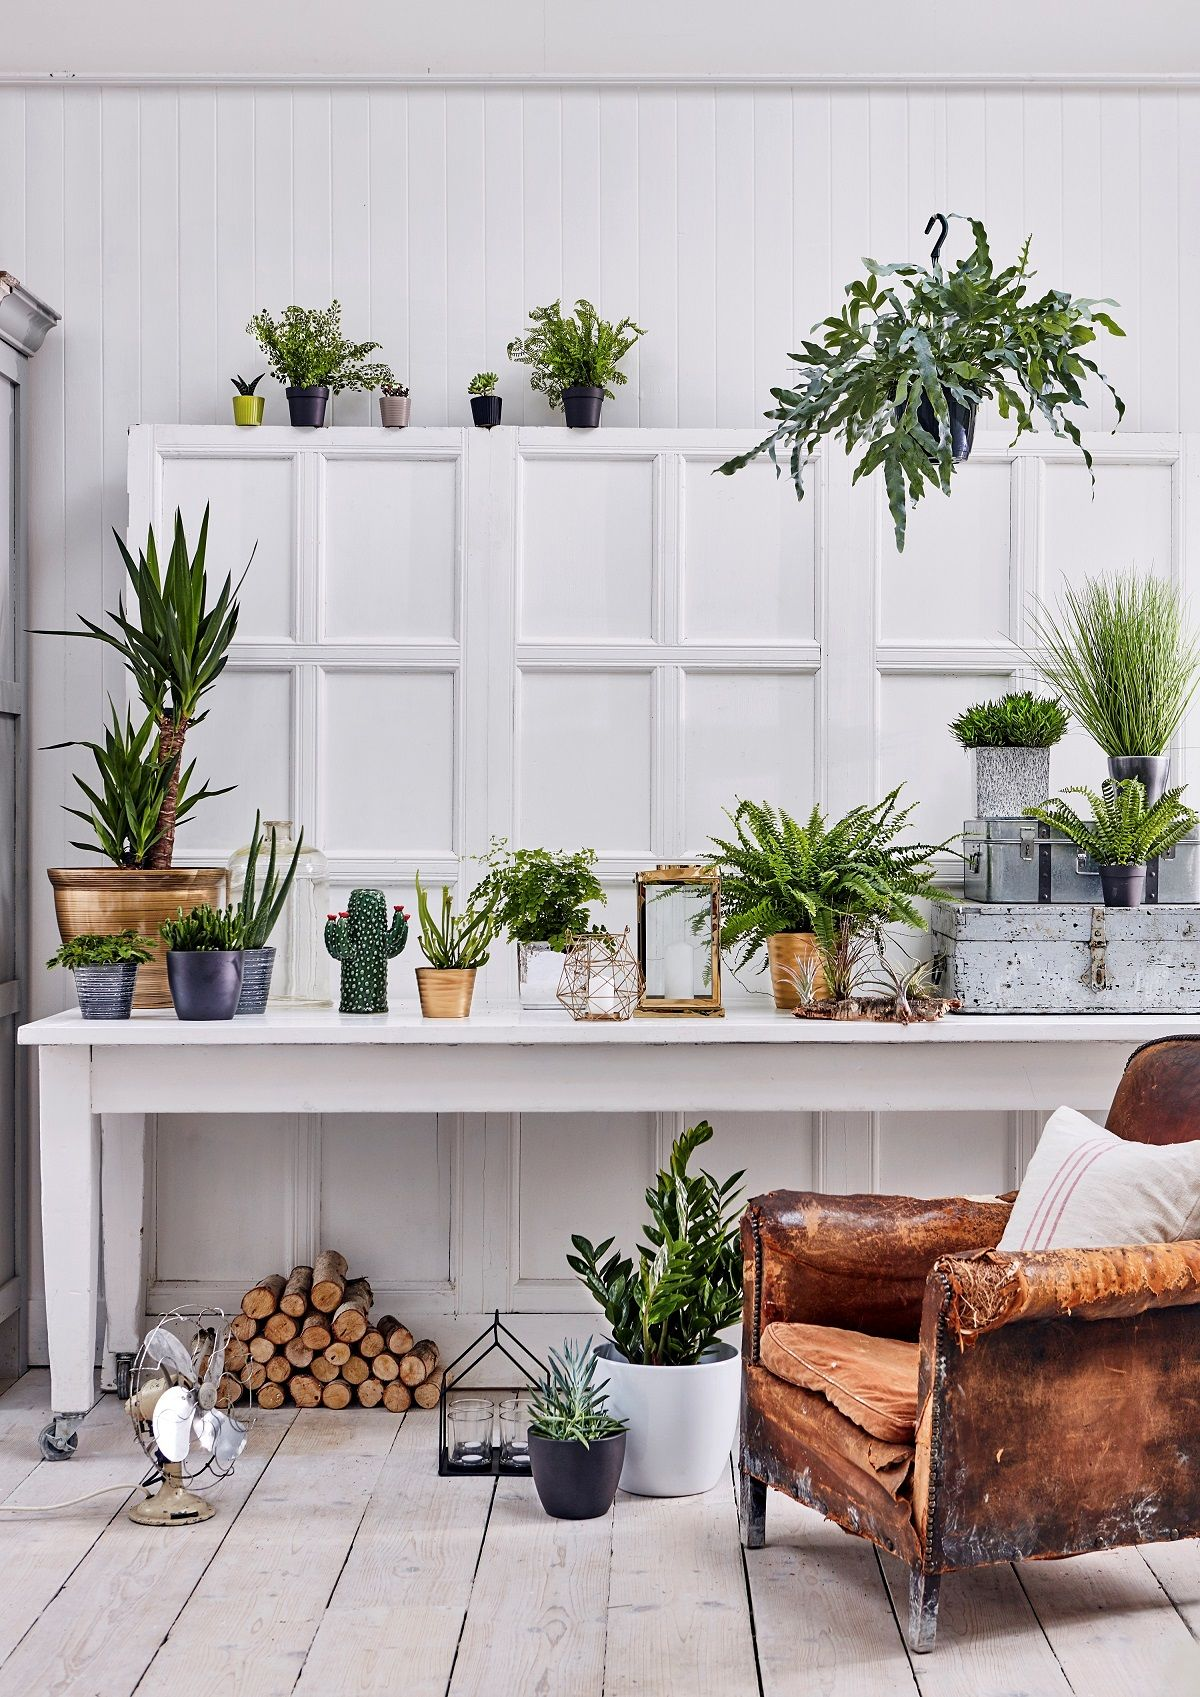 How To Create A Houseplant Haven – 4 Care And Maintenance Tips